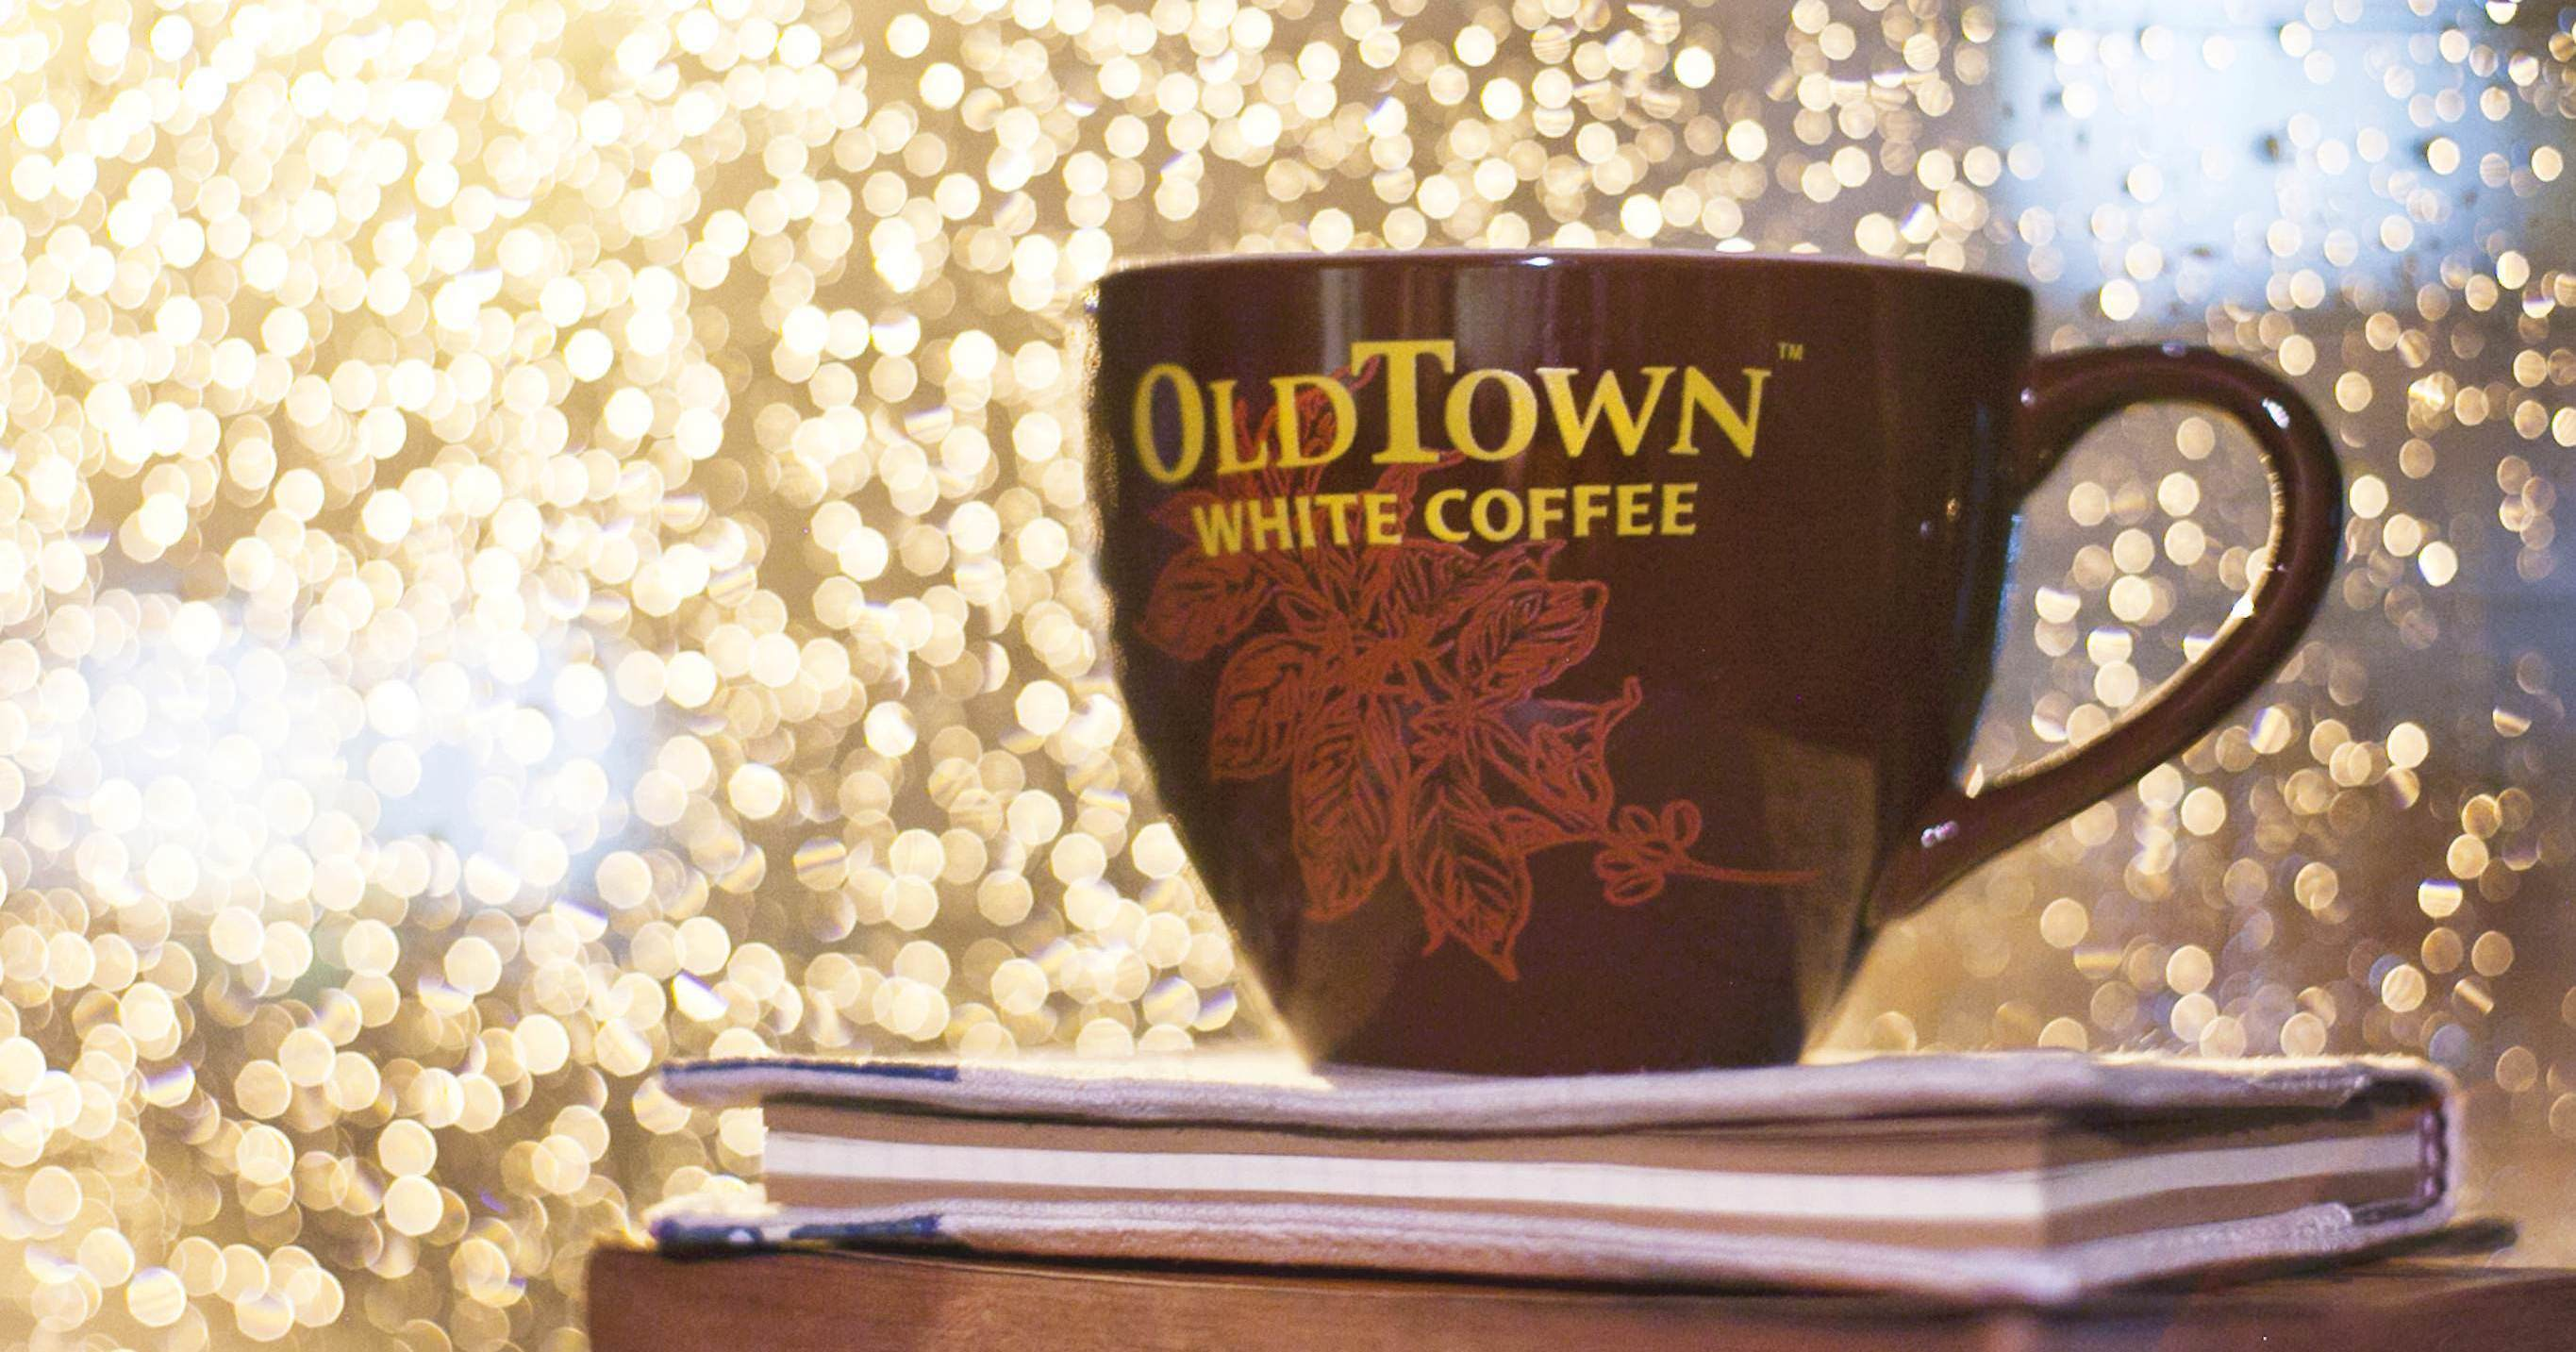 OLDTOWN White Coffee Wants To Break Boring Routines With ...